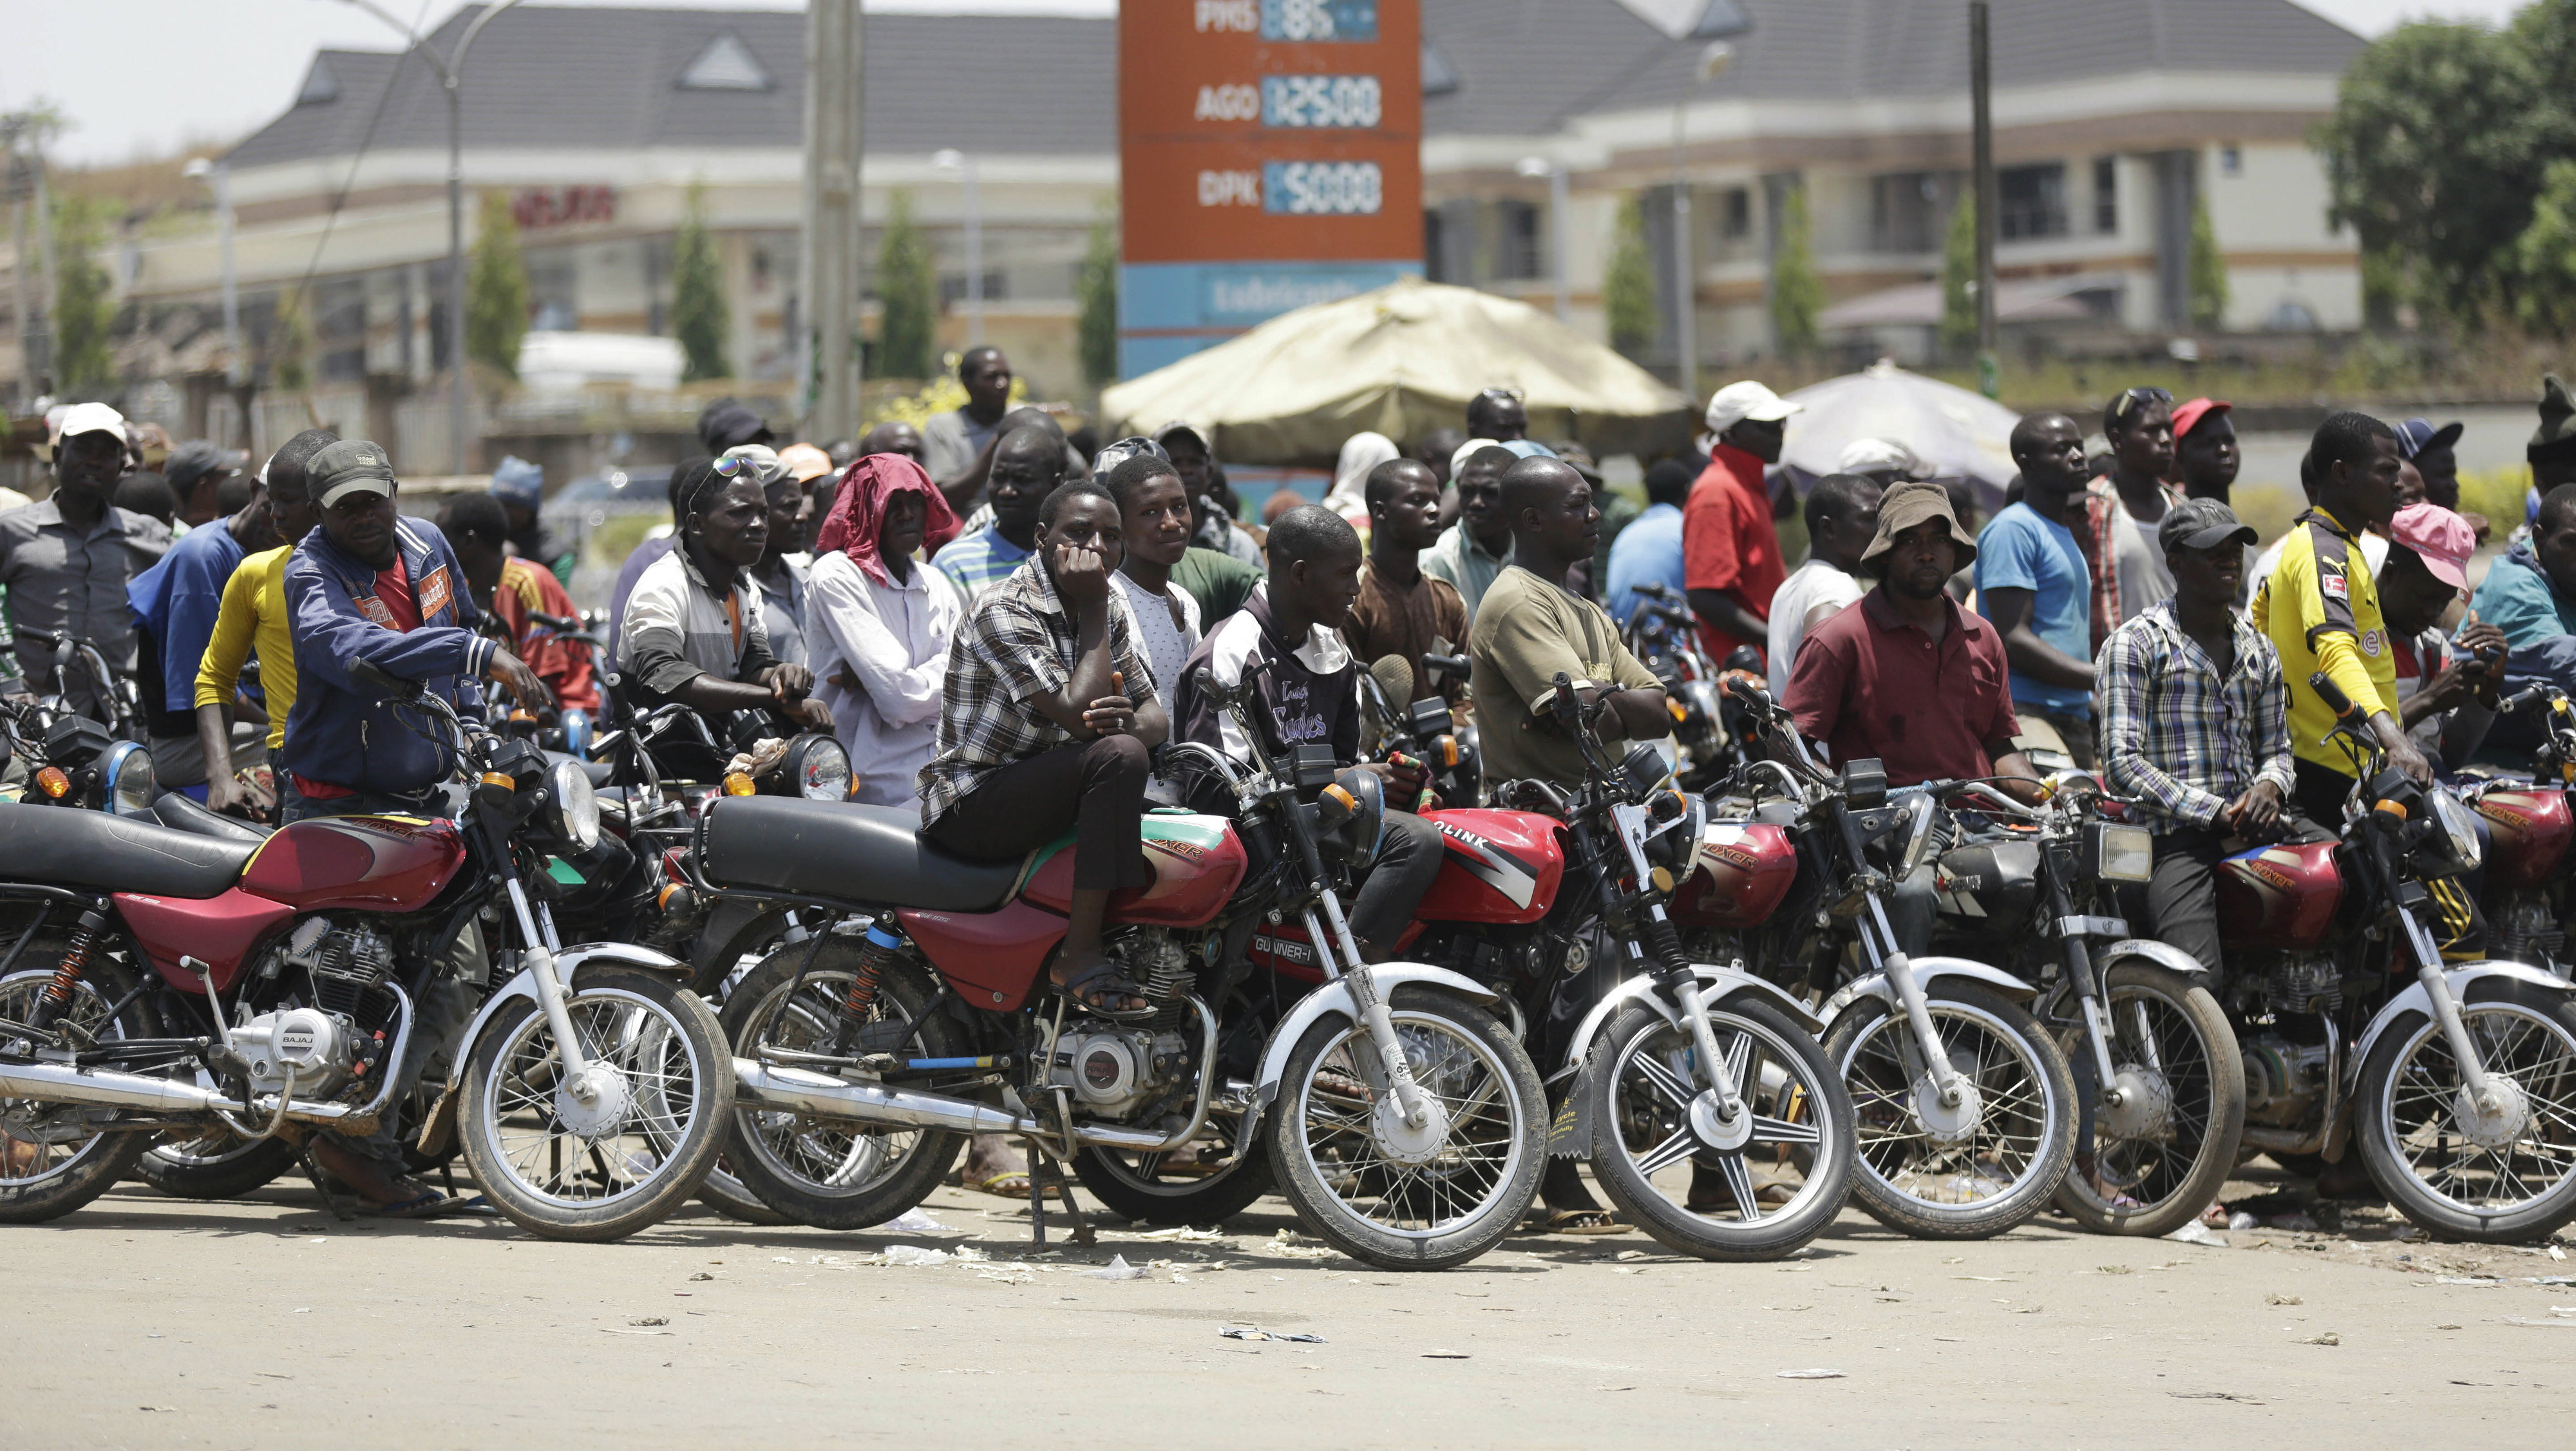 In this photo taken Sunday April 10, 2016, motorcycles wait for fuel at the petrol station in Abuja, Nigeria. Nigeria's government announced Wednesday May 11, 2016 it is lifting a controversial subsidy on gas, nearly doubling the price amid a massive fuel shortage and militant attacks on oil installations in Africa's biggest petroleum producer